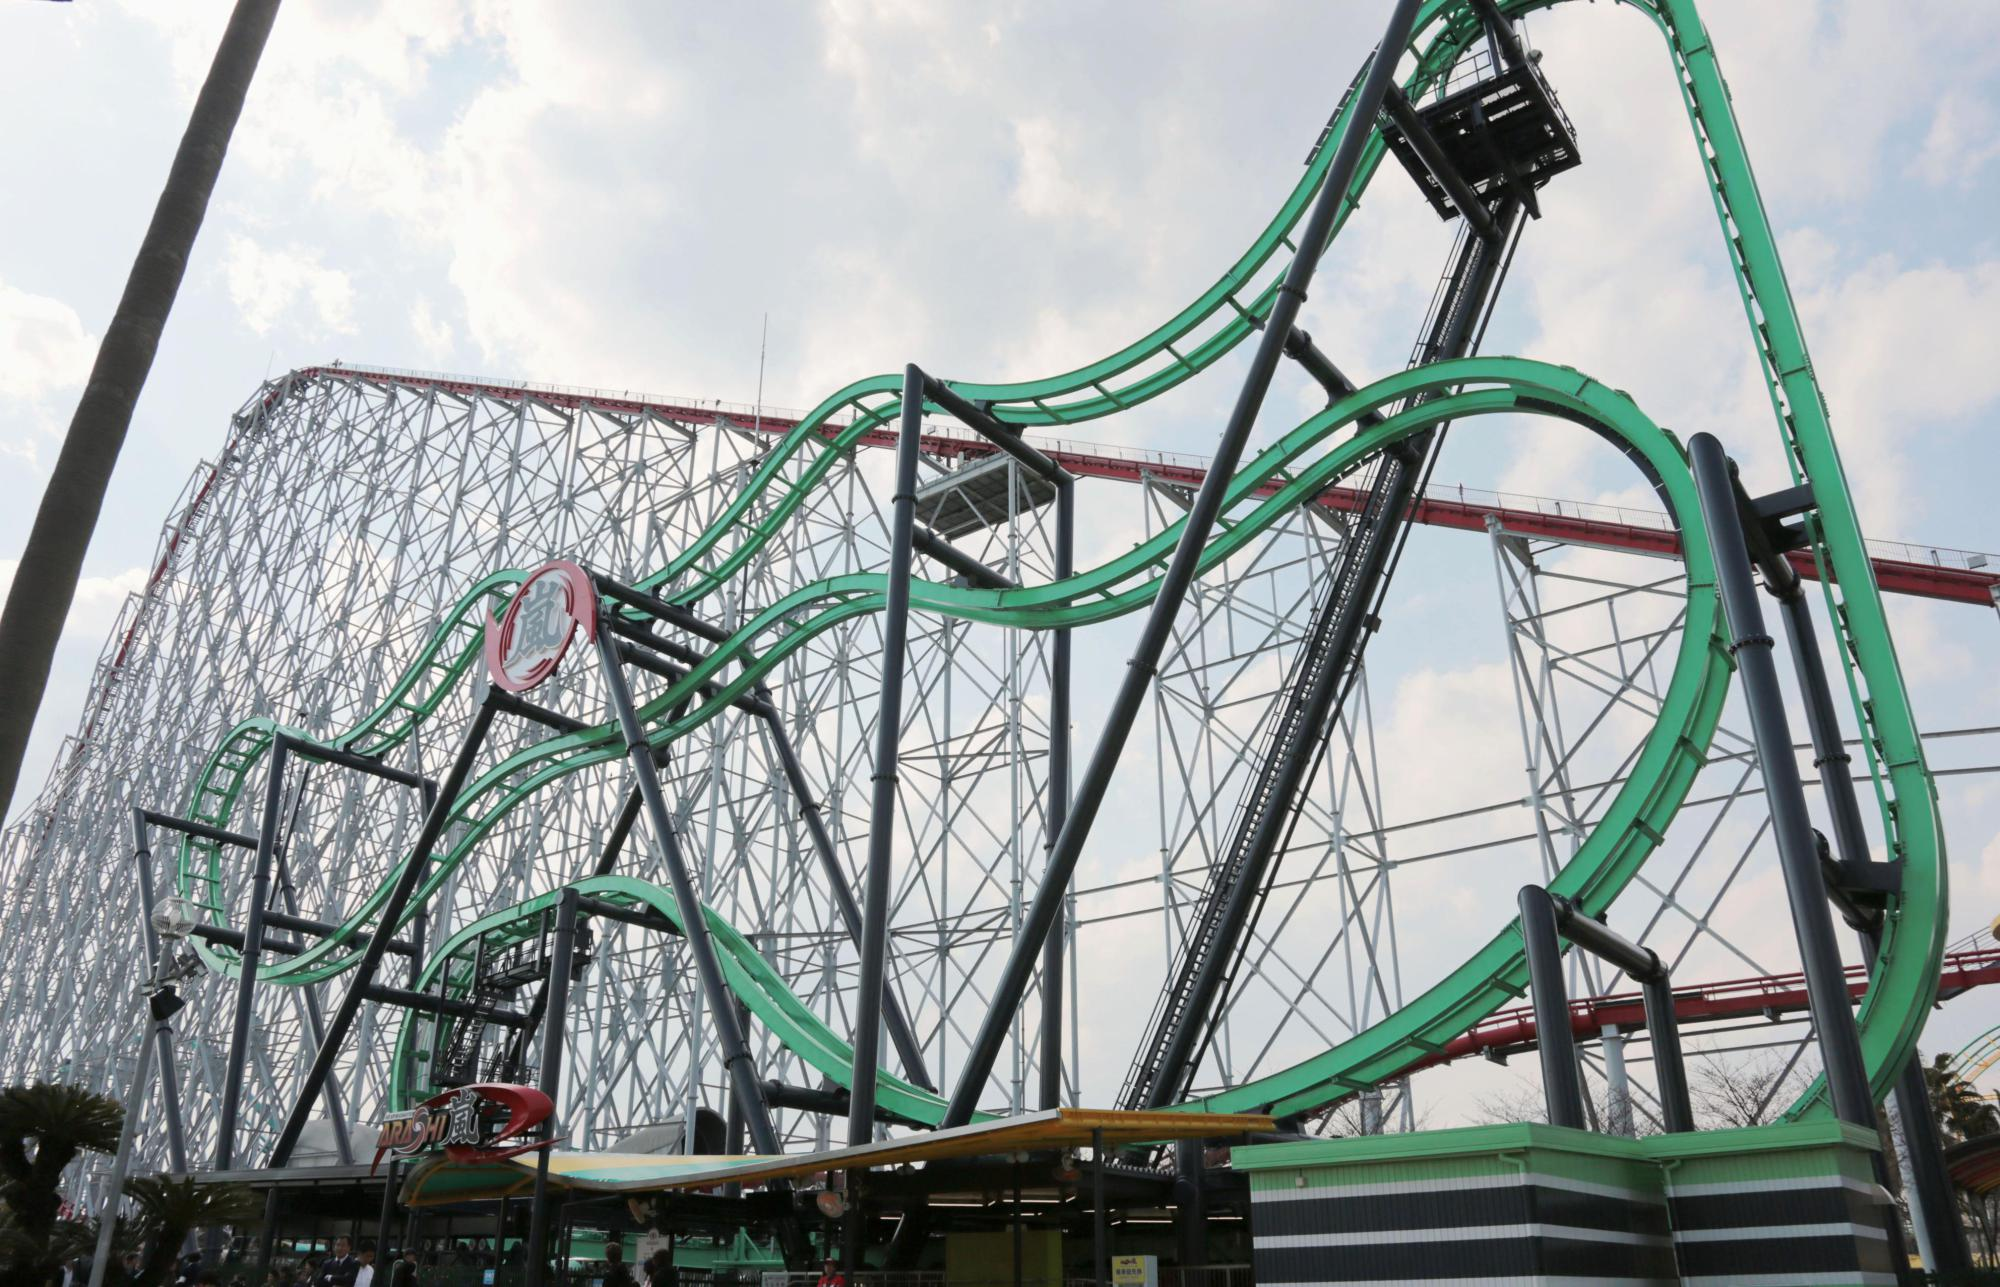 A roller coaster at Nagashima Spa Land in Mie Prefecture made an emergency stop on Monday due to a techinical glitch. | KYODO